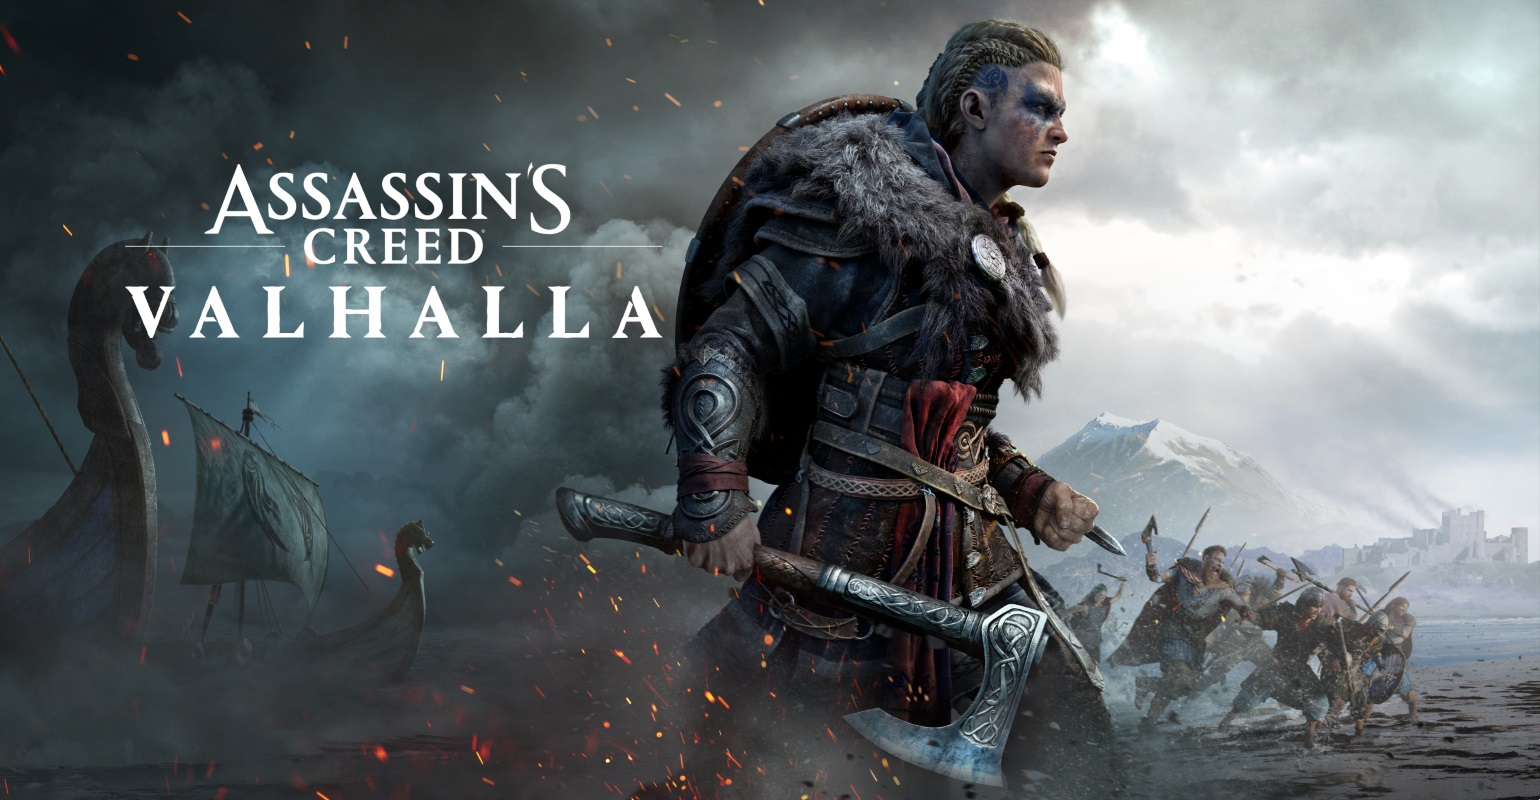 UBISOFT'S ASSASSIN'S CREED VALHALLA IS THE BIGGEST ASSASSIN'S CREED GAME LAUNCH IN HISTORY